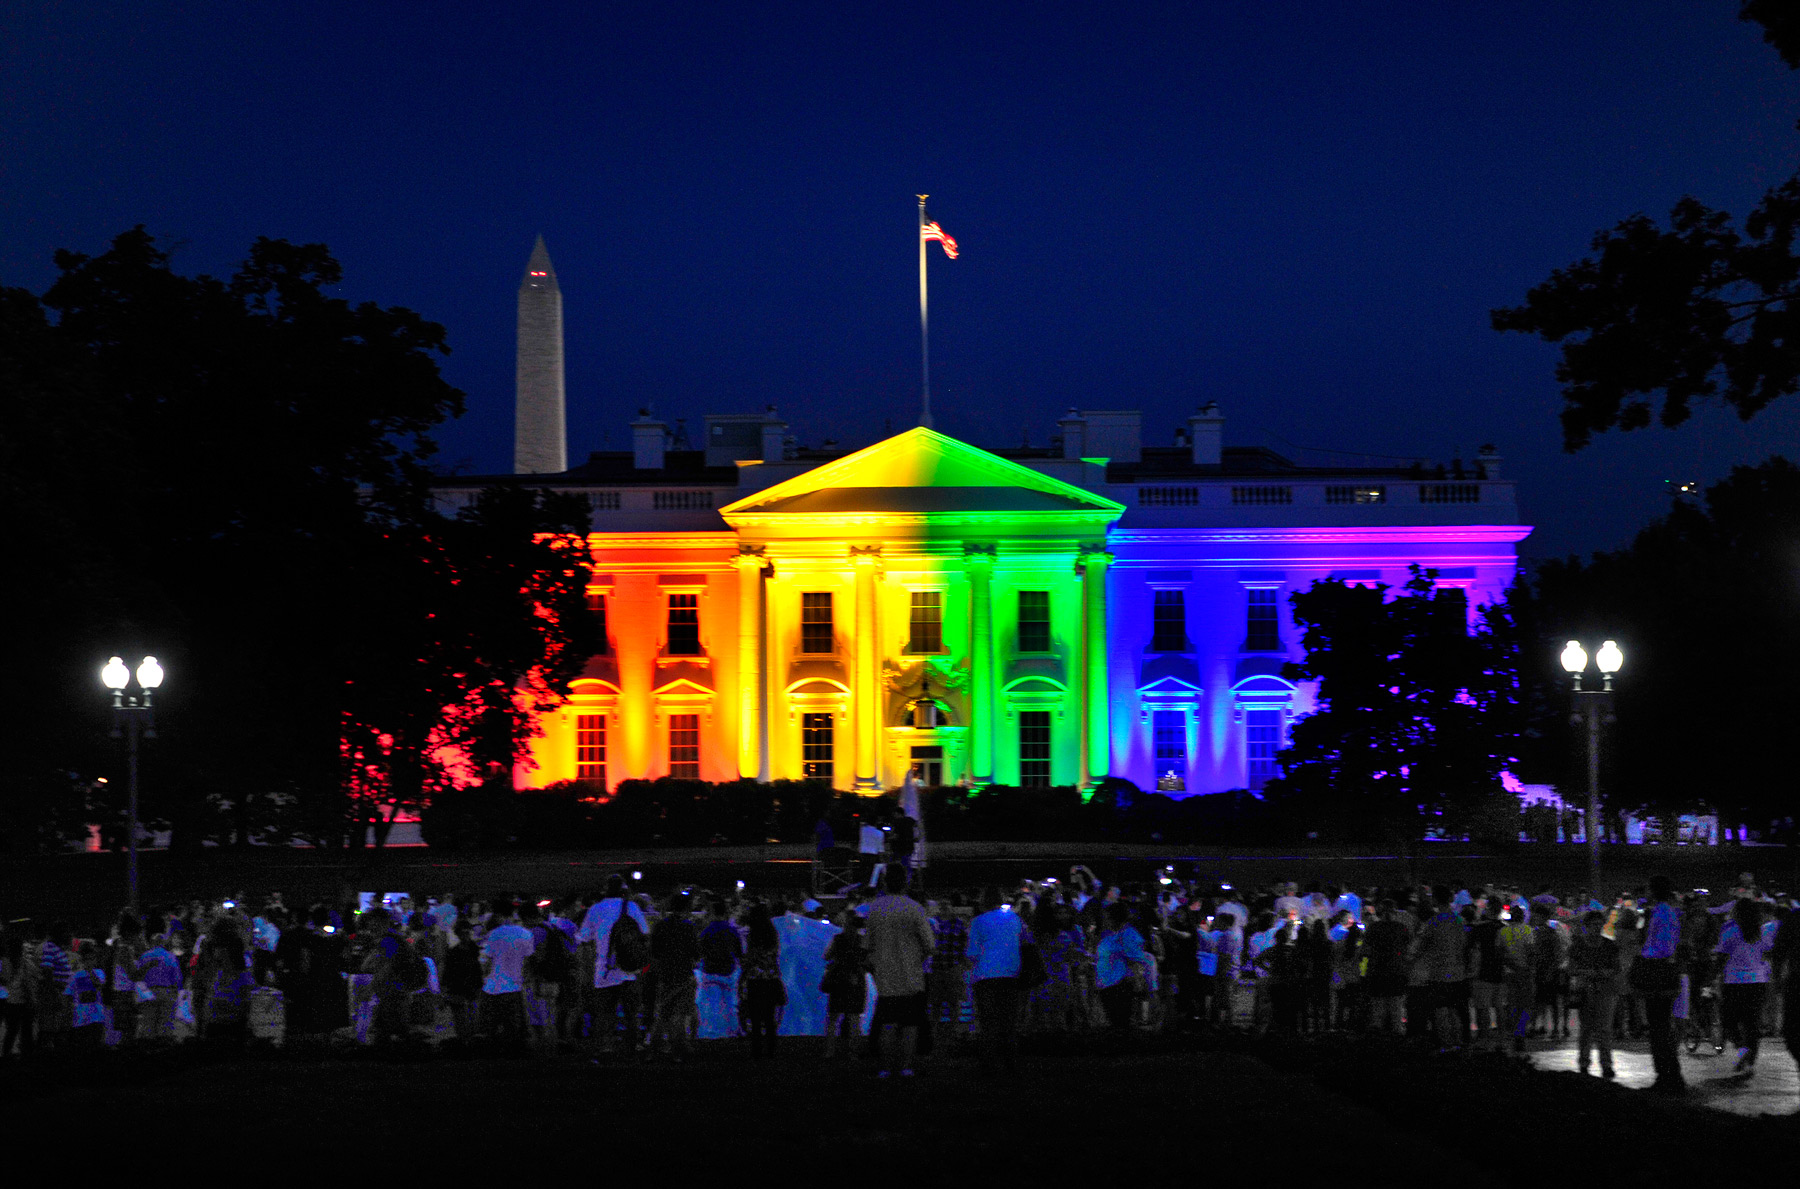 WASHINGTON, DC- JUNE 26: Lots of folks with mobile phones take photos tonight of the colorful White House.The White House was lit in multi-colored lights tonight to honor the Supreme Court decision to allow gay marriage. Michael S. Williamson/The Washington Post via Getty Images)